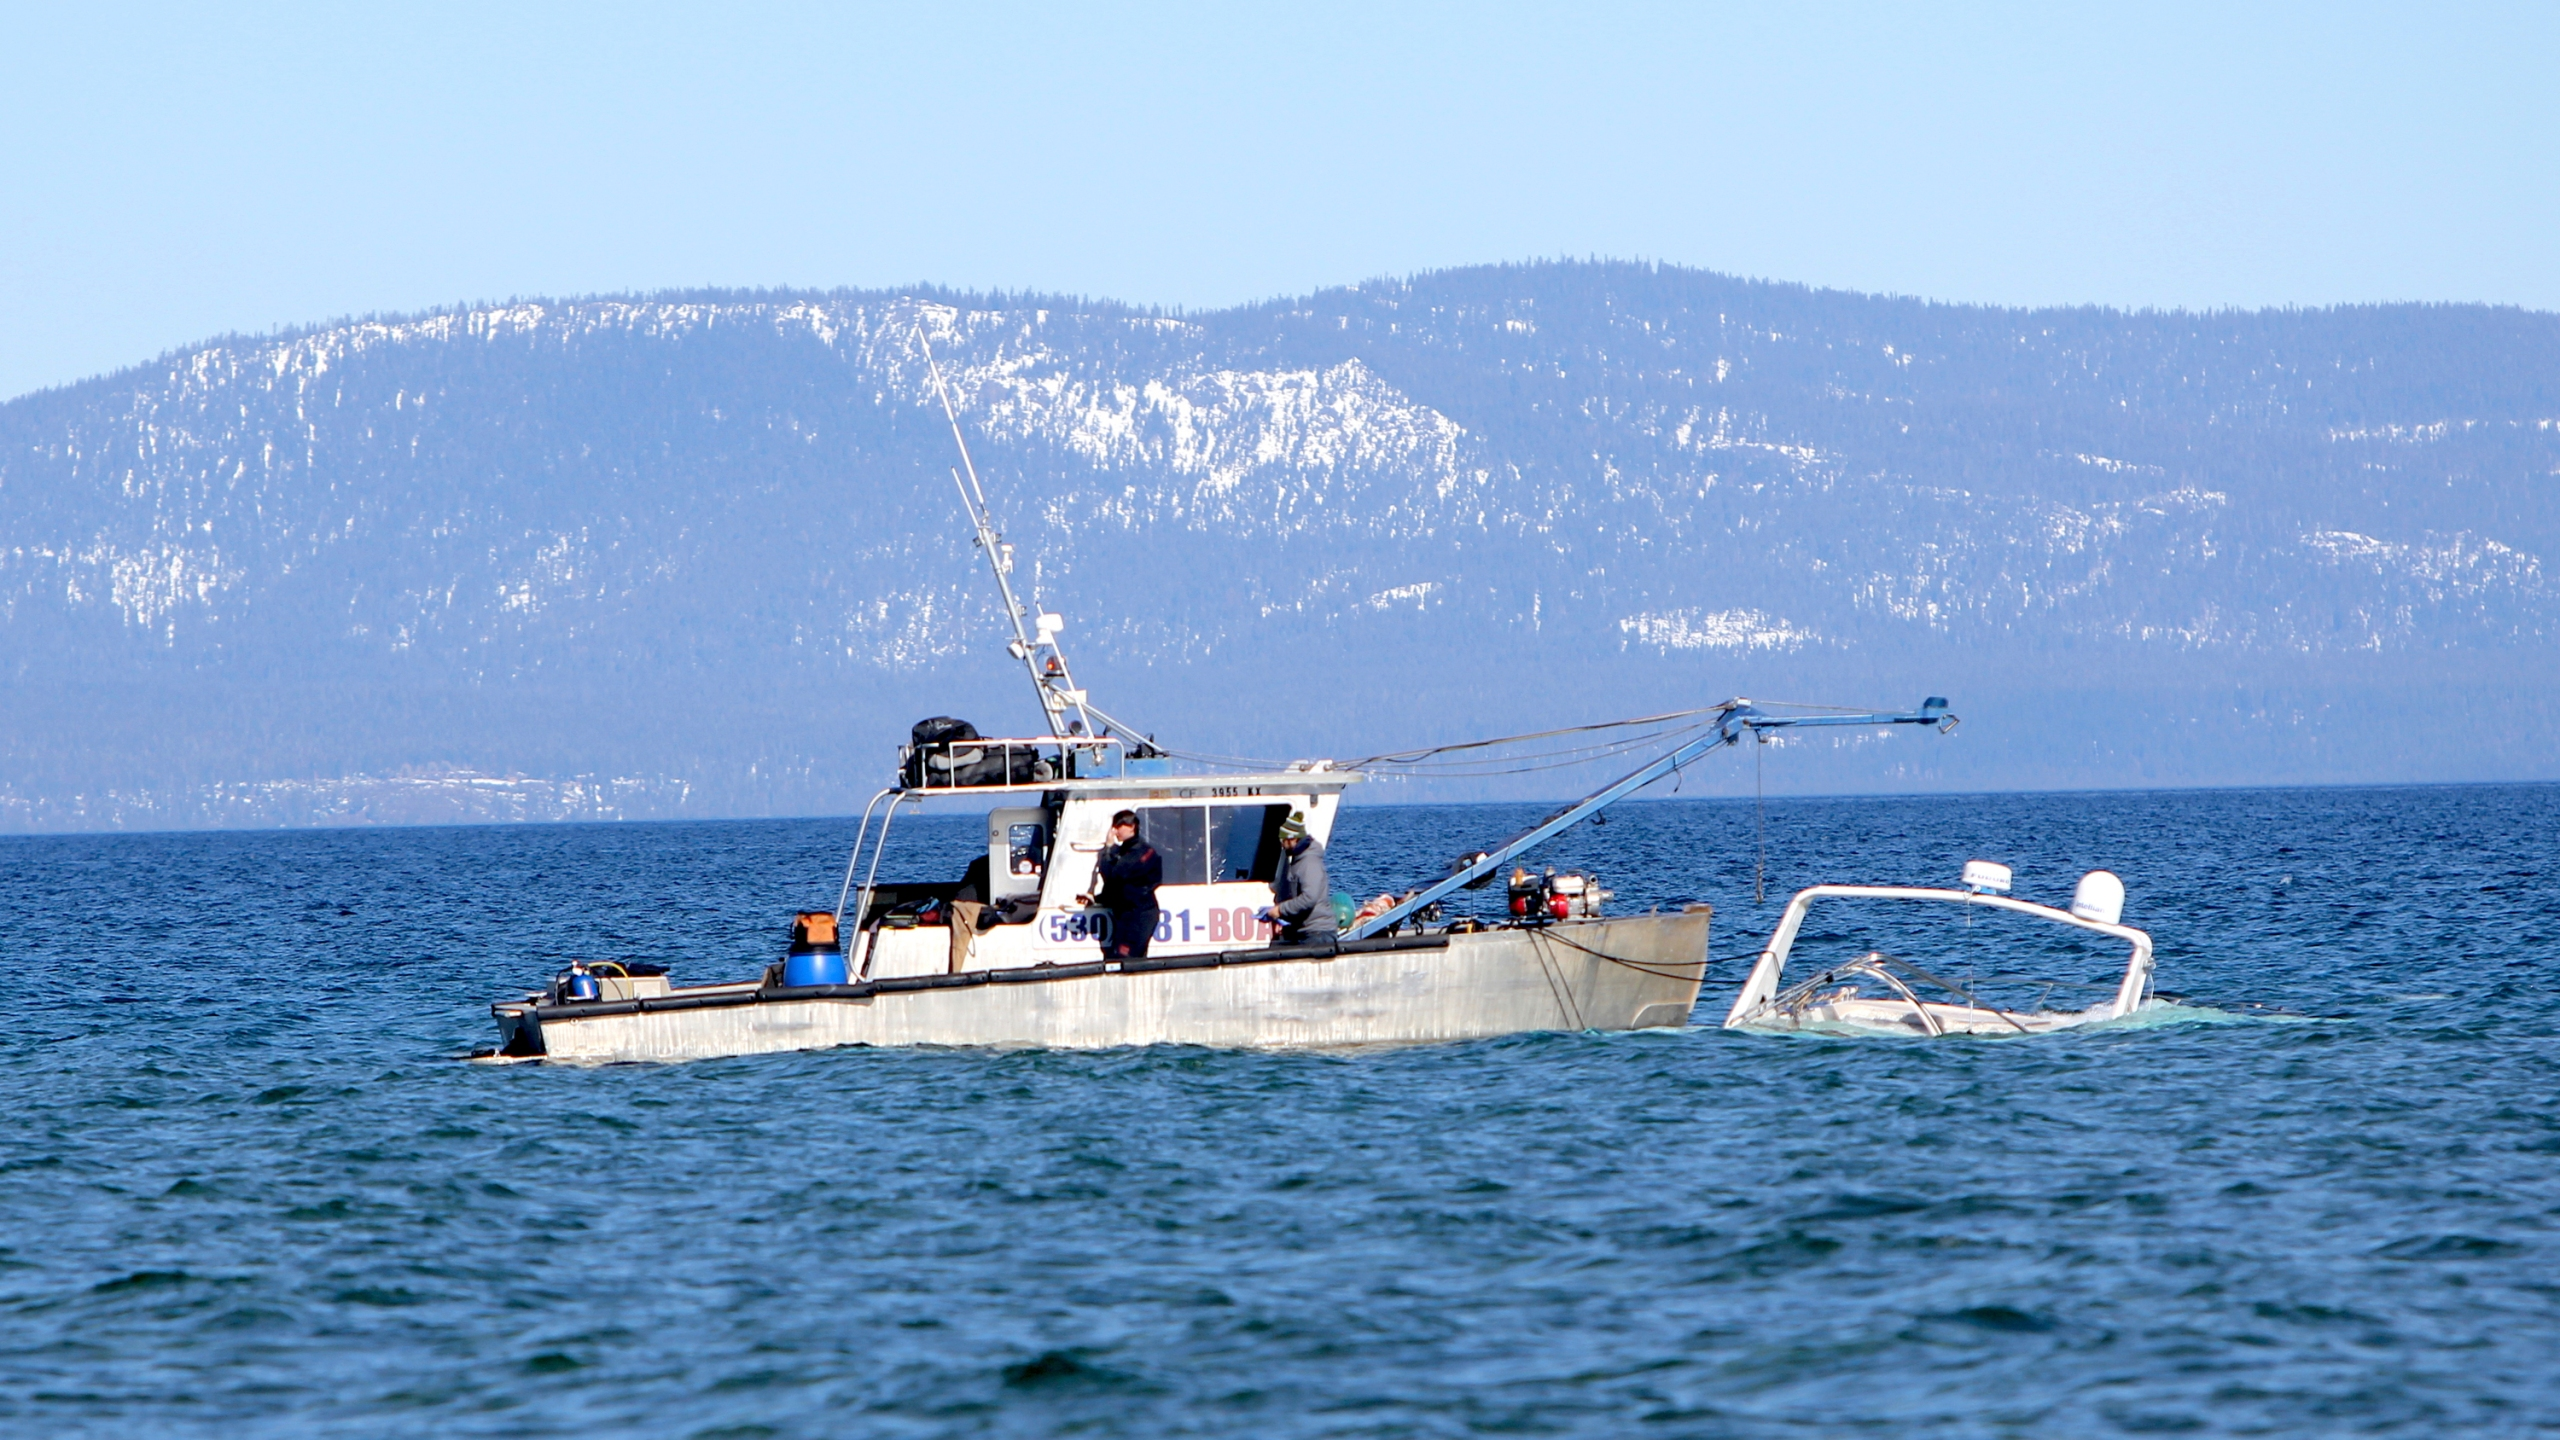 A crew for High Sierra Marine Inc. recovers a sunk boat , Tuesday, Feb. 23, 2021, of the shore of South Lake Tahoe. (Bill Rozak/The Tahoe Tribune via AP)